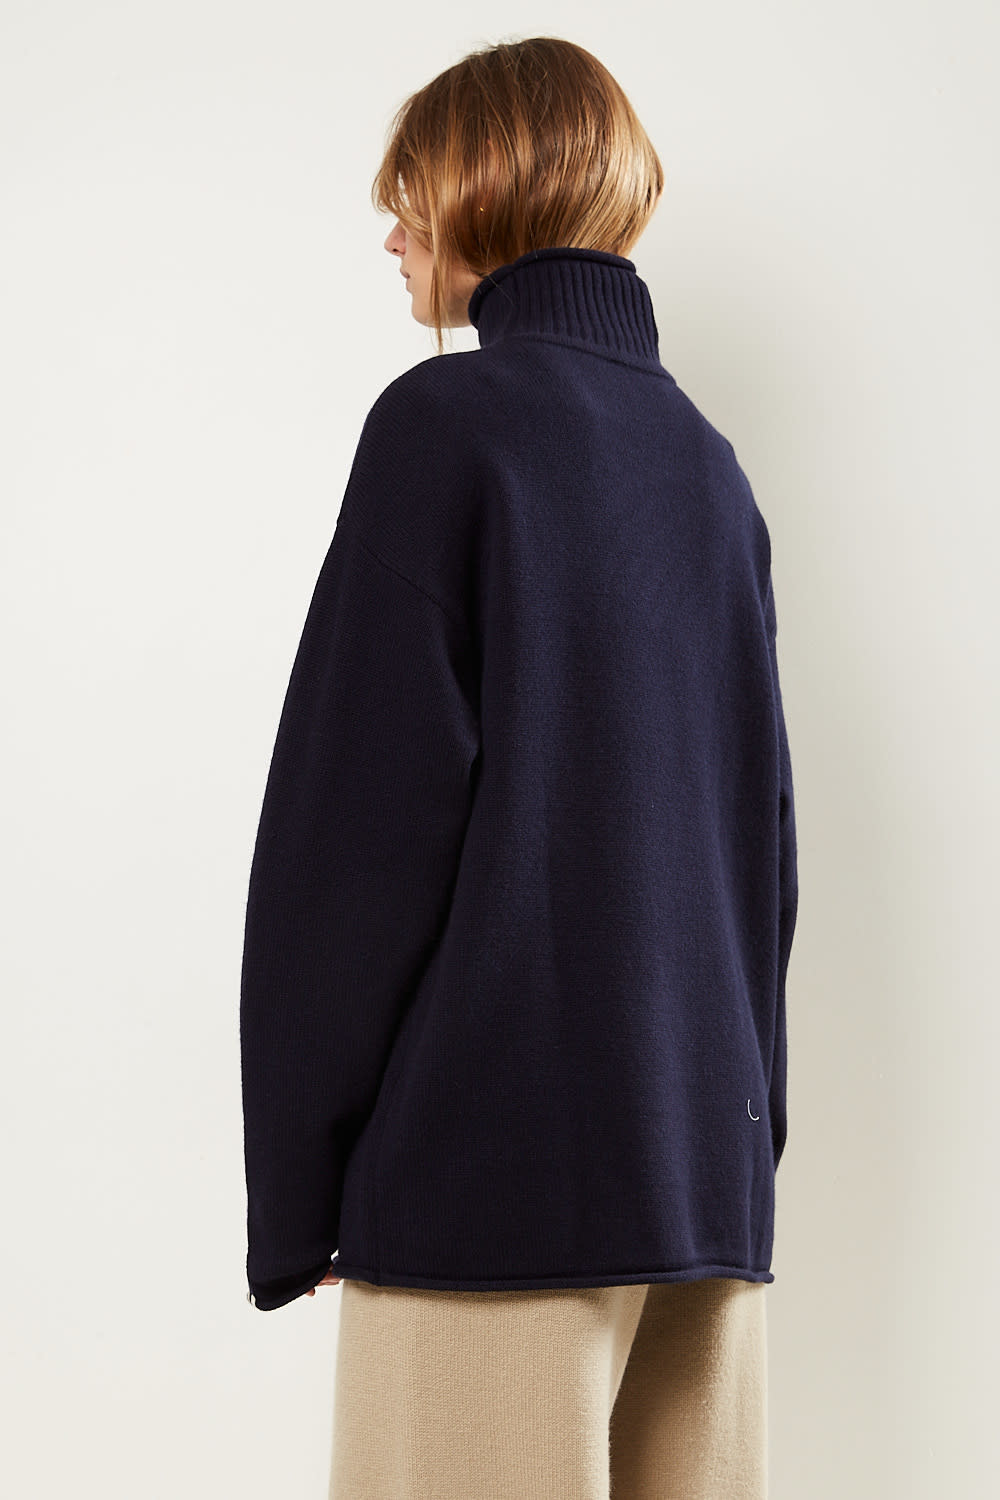 extreme cashmere No100 hippy oversize sweater